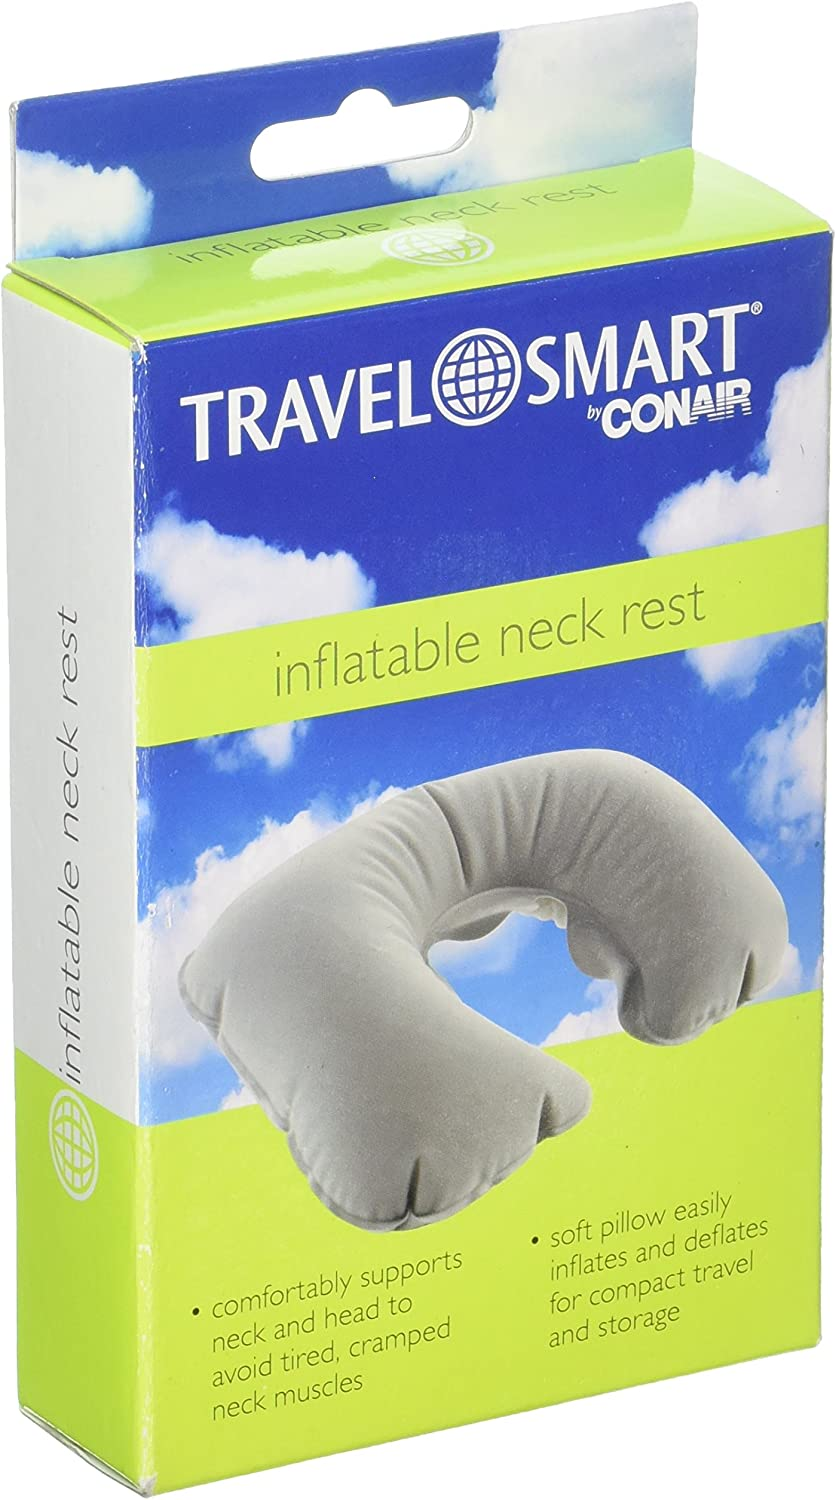 Travel Smart Spasm price by Conair Inflatable Neck Grey Rest Popularity